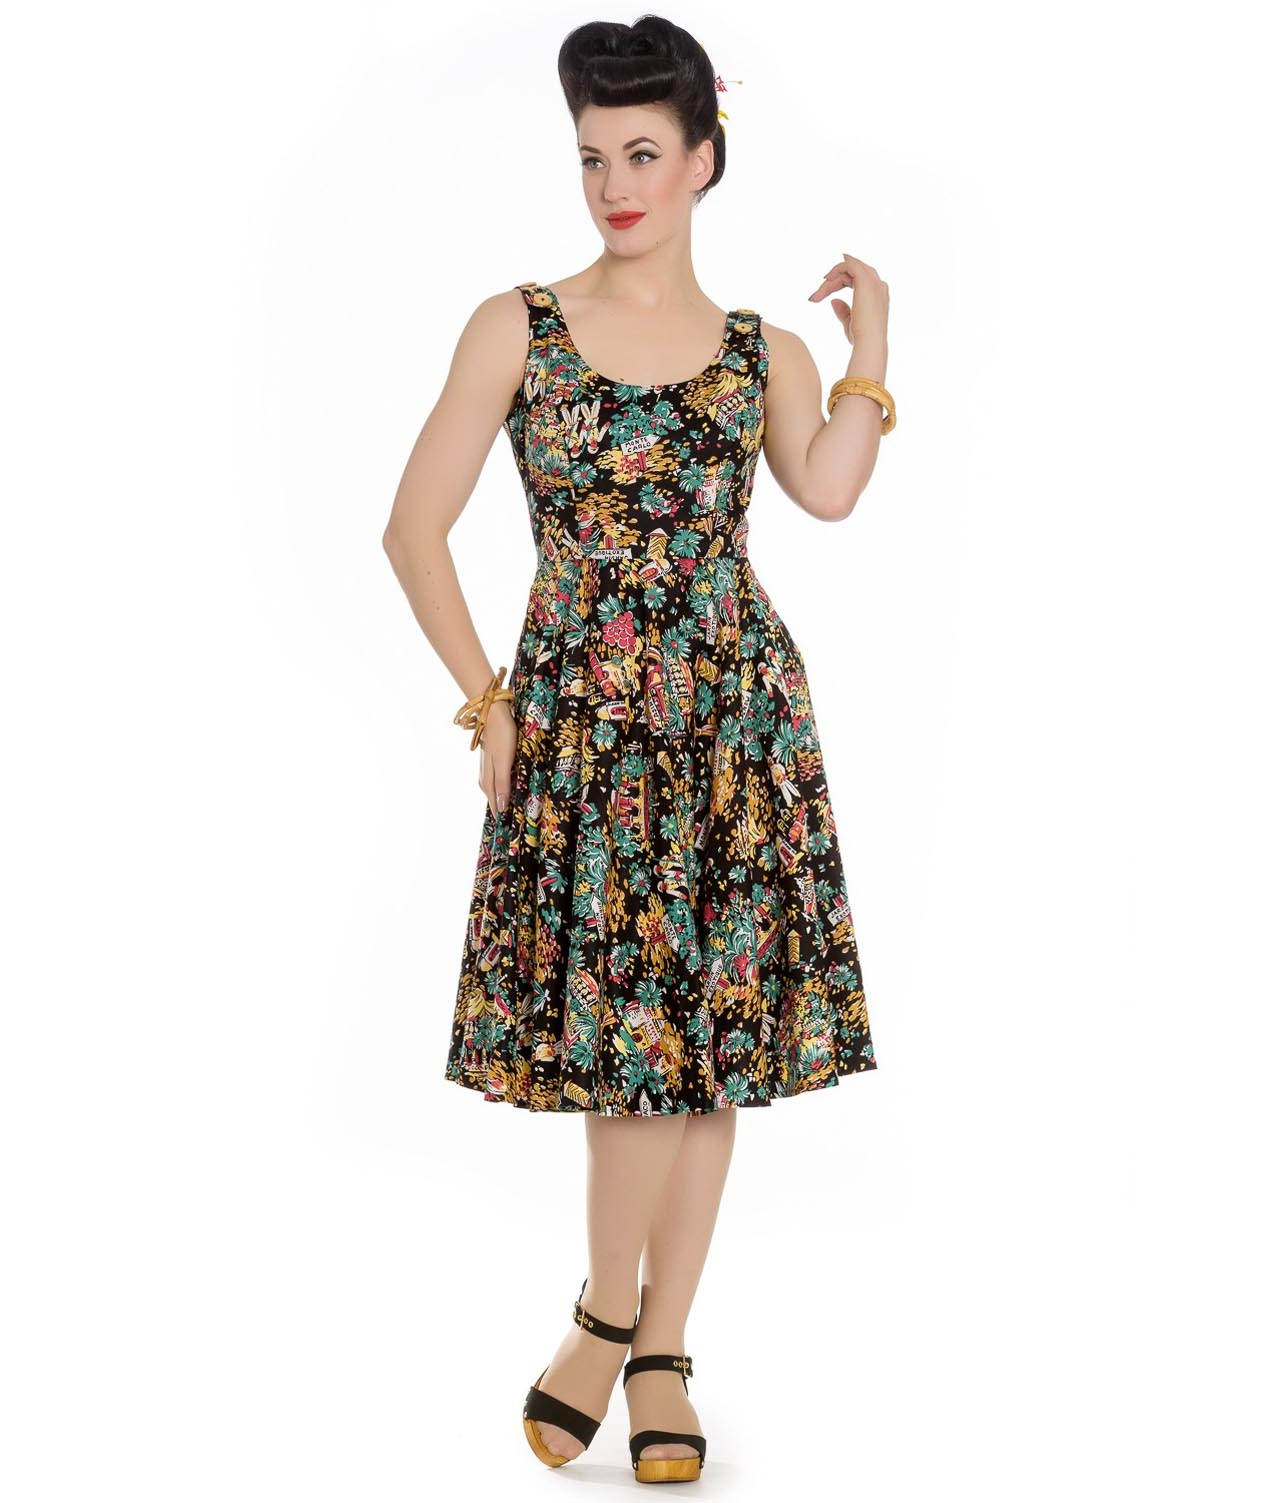 Hell-Bunny-Summer-50s-Black-Dress-MONTE-CARLO-Tropical-Holiday-All-Sizes thumbnail 13